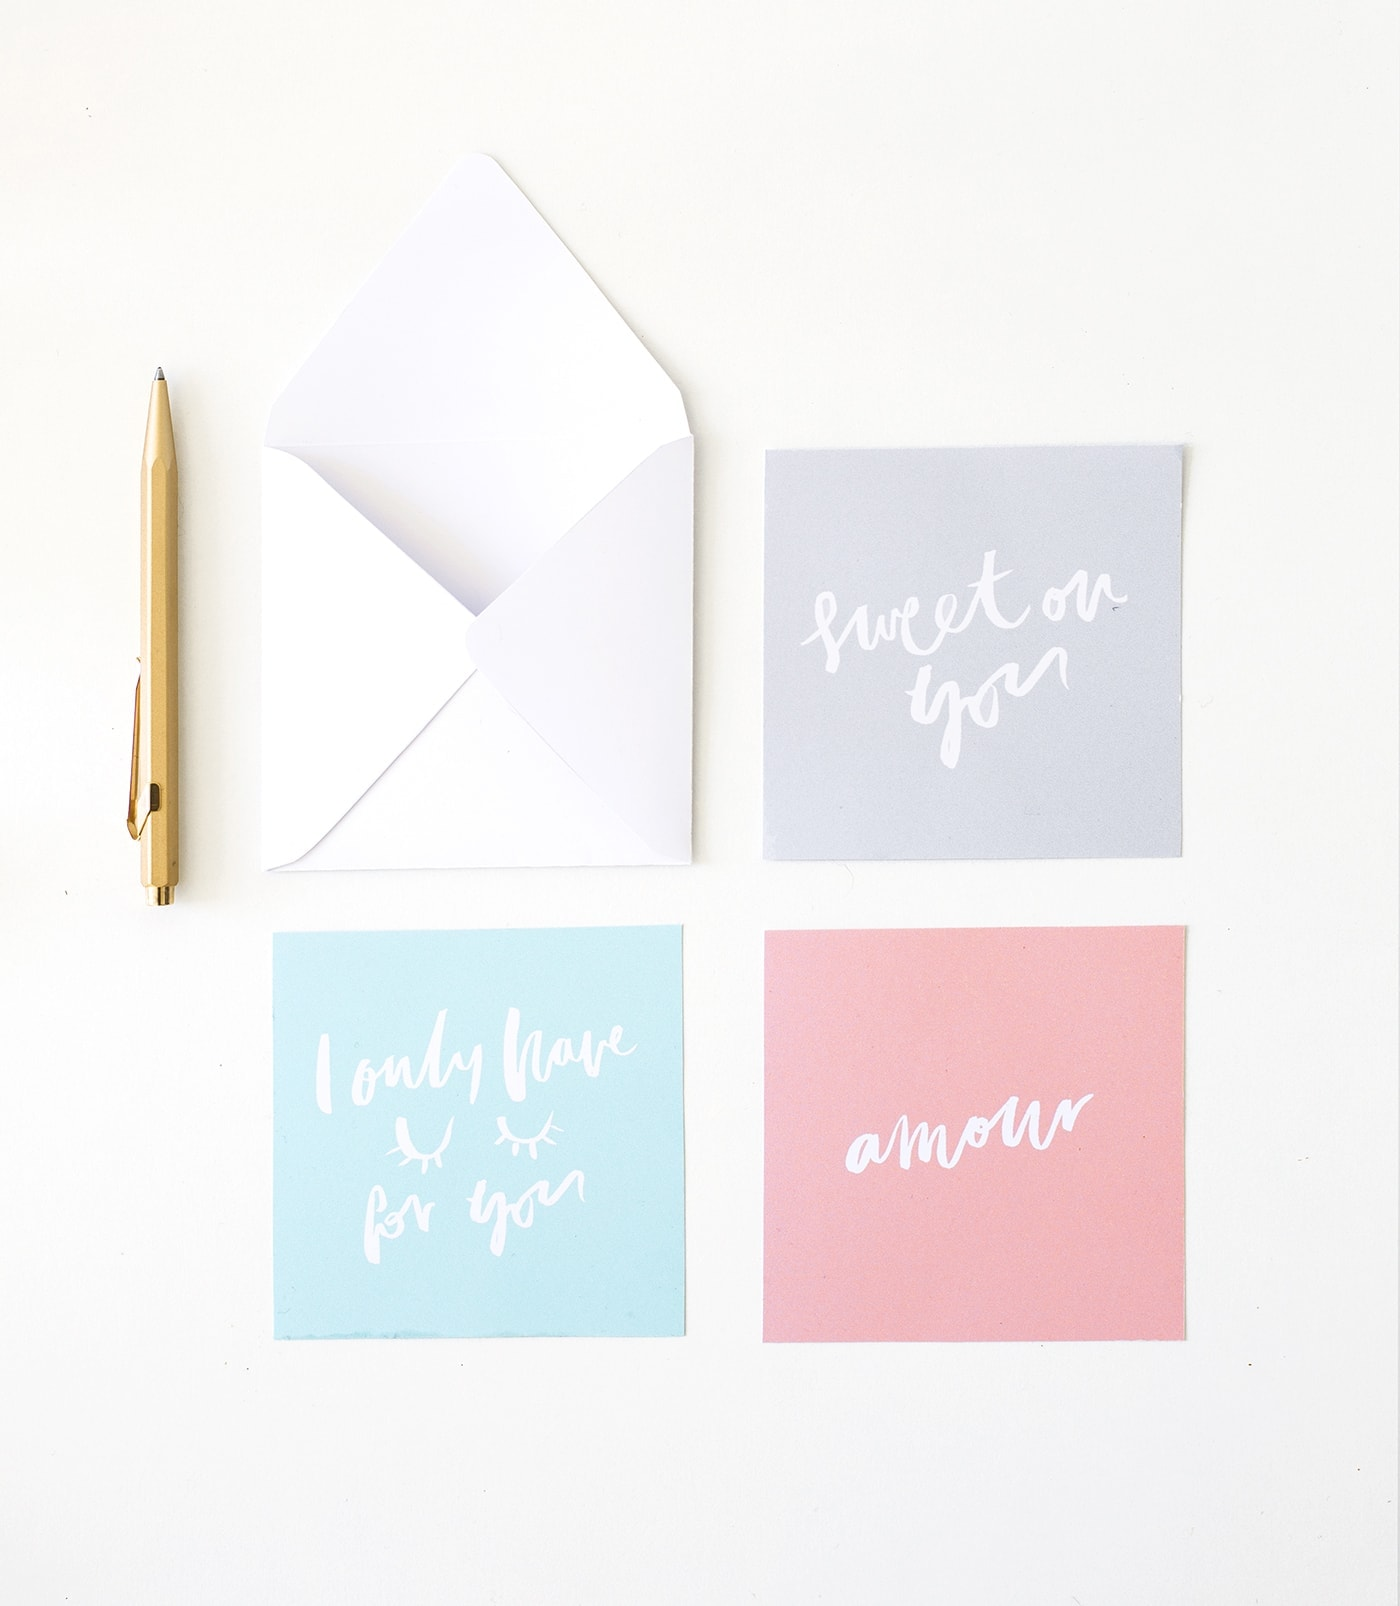 free valentine's printable cards and envelopes